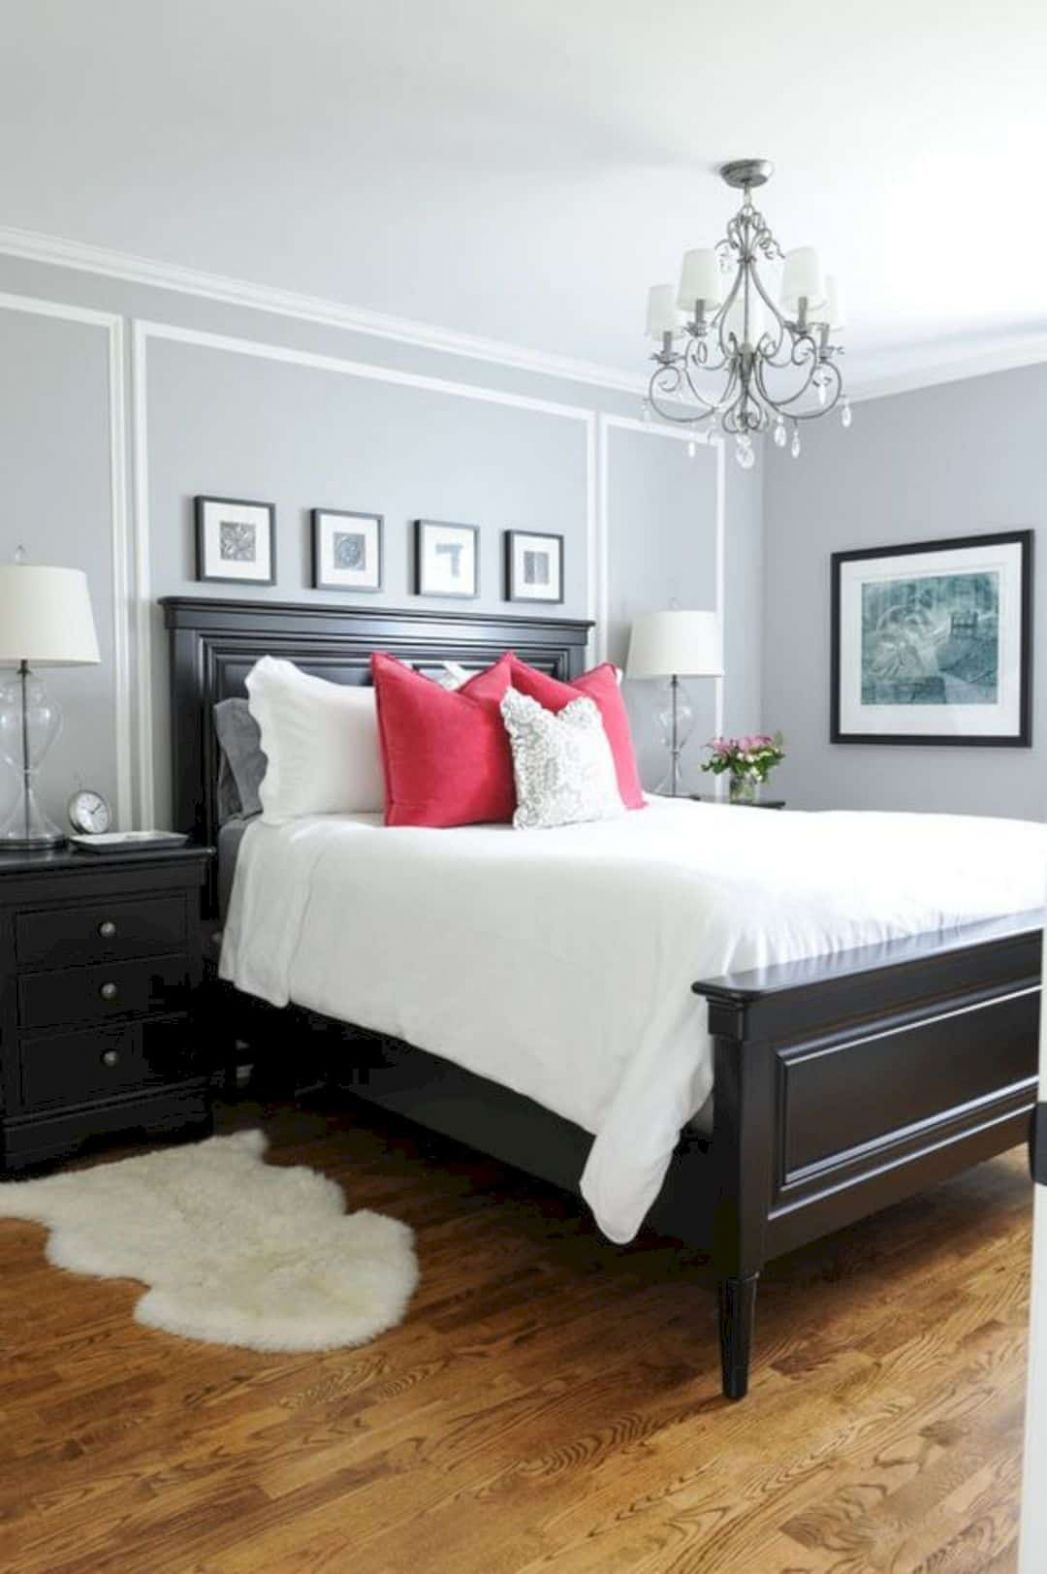 8 Awesome Black Furniture Bedroom Ideas - bedroom ideas with dark furniture